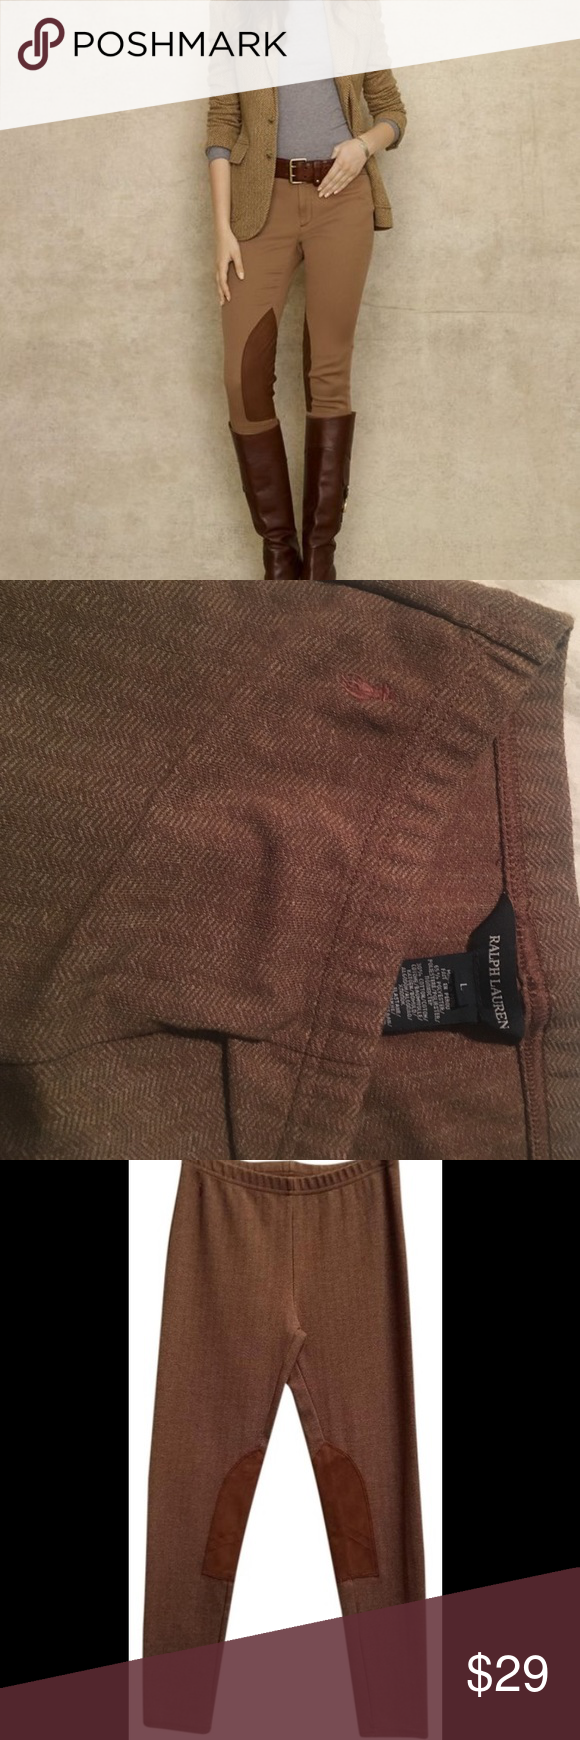 Polo herringbone riding leggings S Never worn. Polo herringbone riding leggings they are a kids size L and will for an XS or a S they are brown herringbone made to look like tweed with suede patches on the inner knees they are super stretchy and soft Polo by Ralph Lauren Pants Leggings